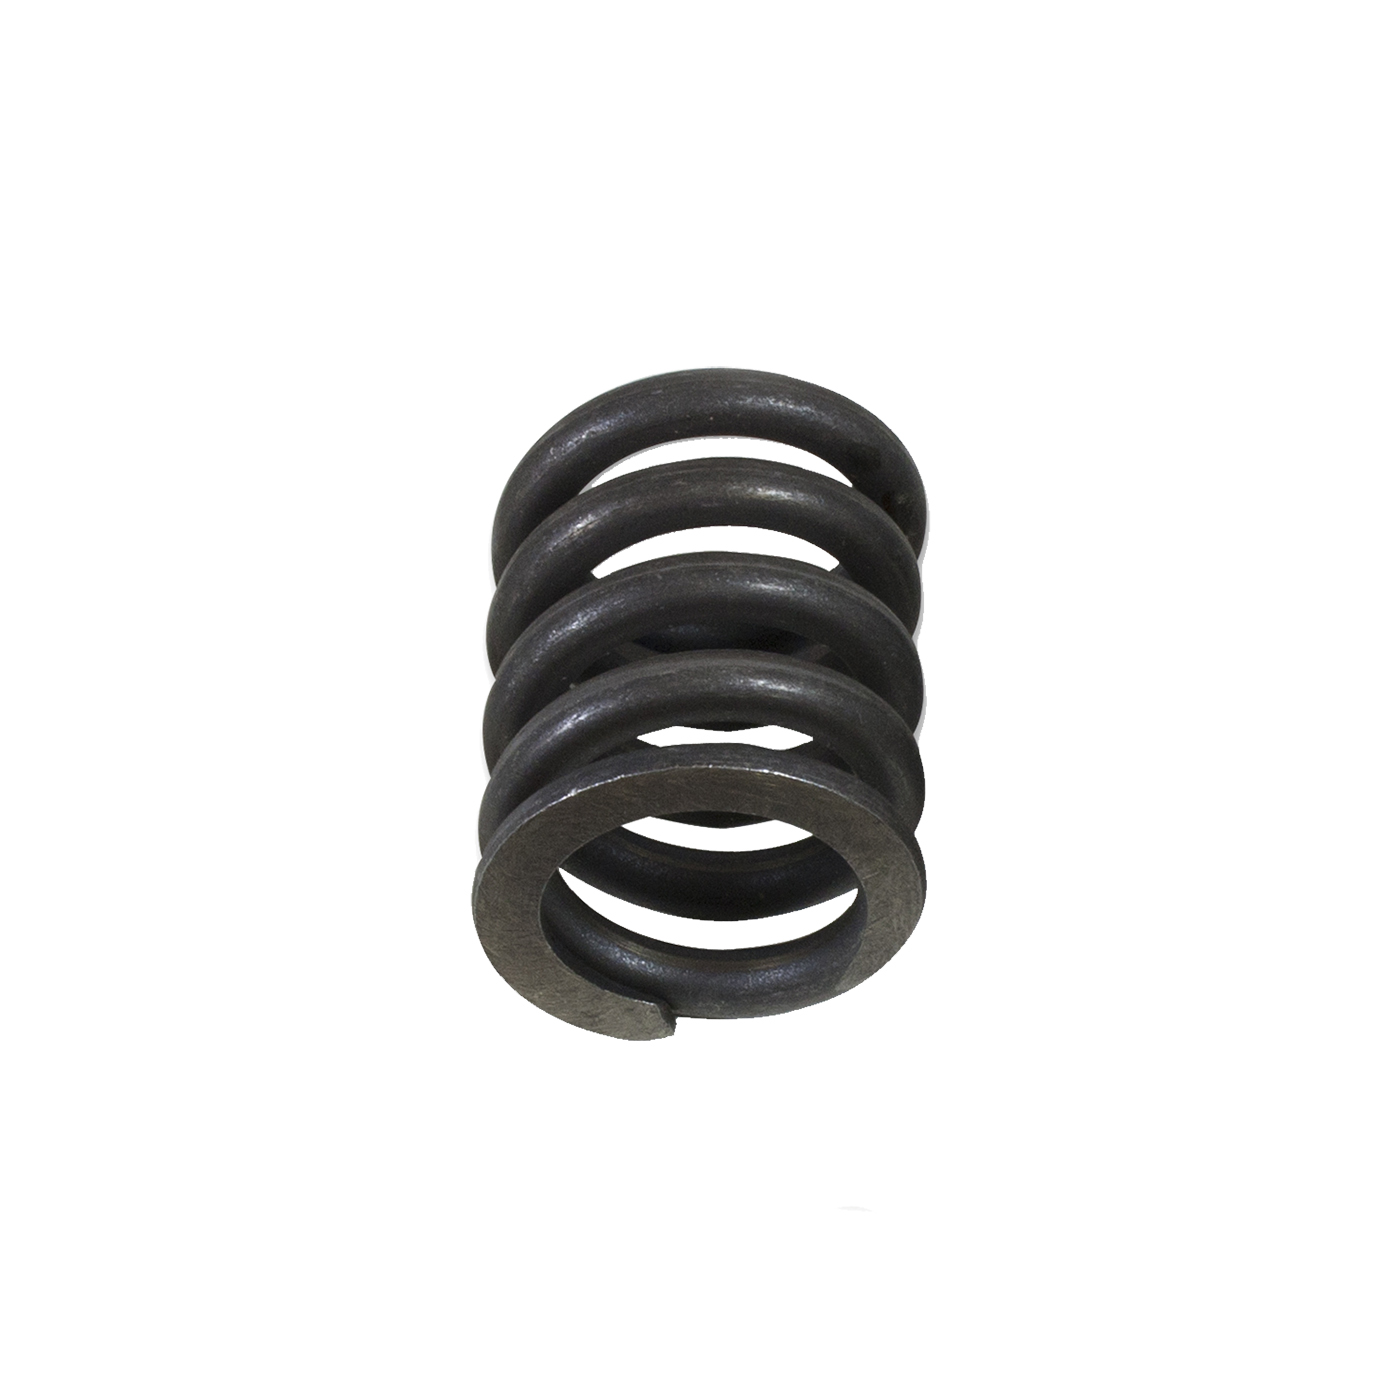 Steering King Pin Bushing Spring